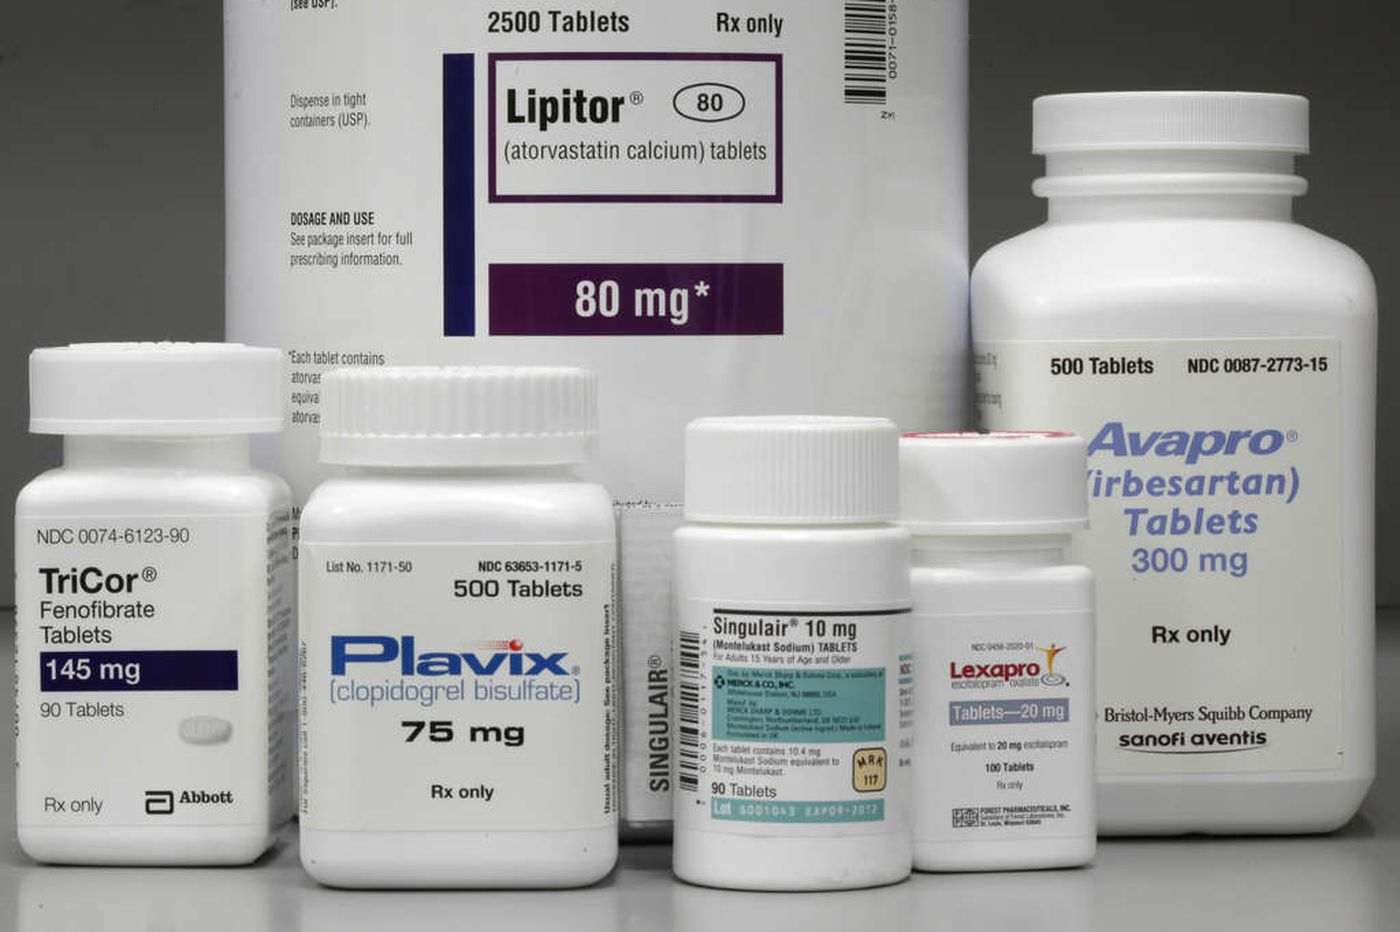 Report: Specialty drugs drive prescription spending jump